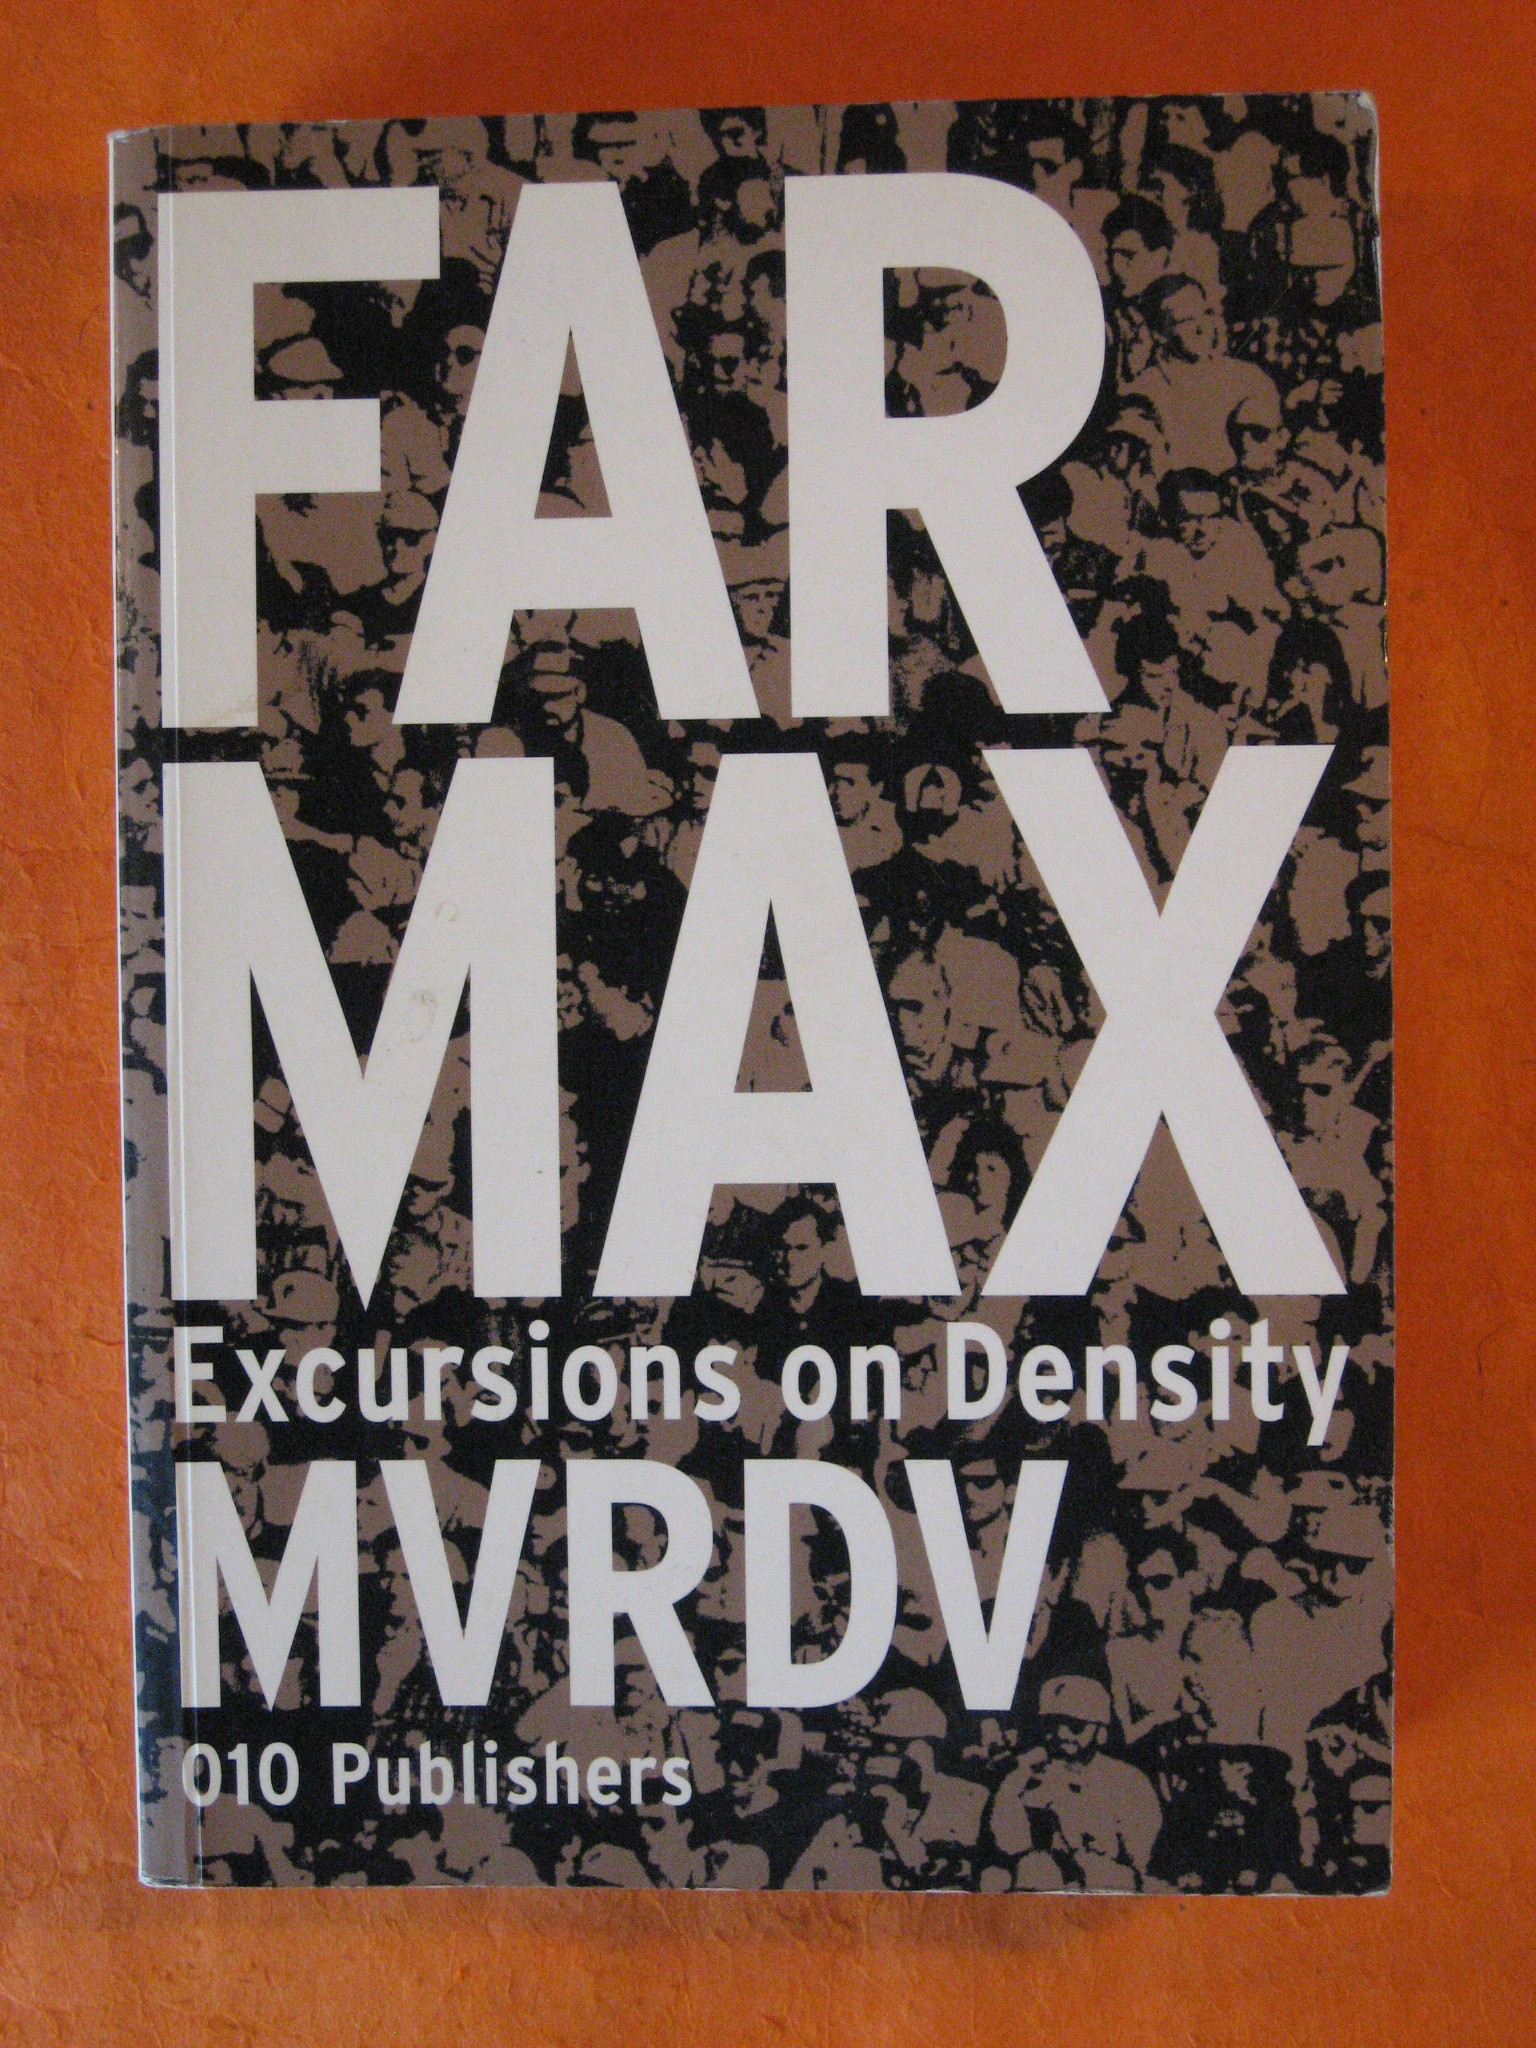 Farmax (MVRDV), Maas, Winy; Van Rijs, Jacob; Koek, Richard (Editors)